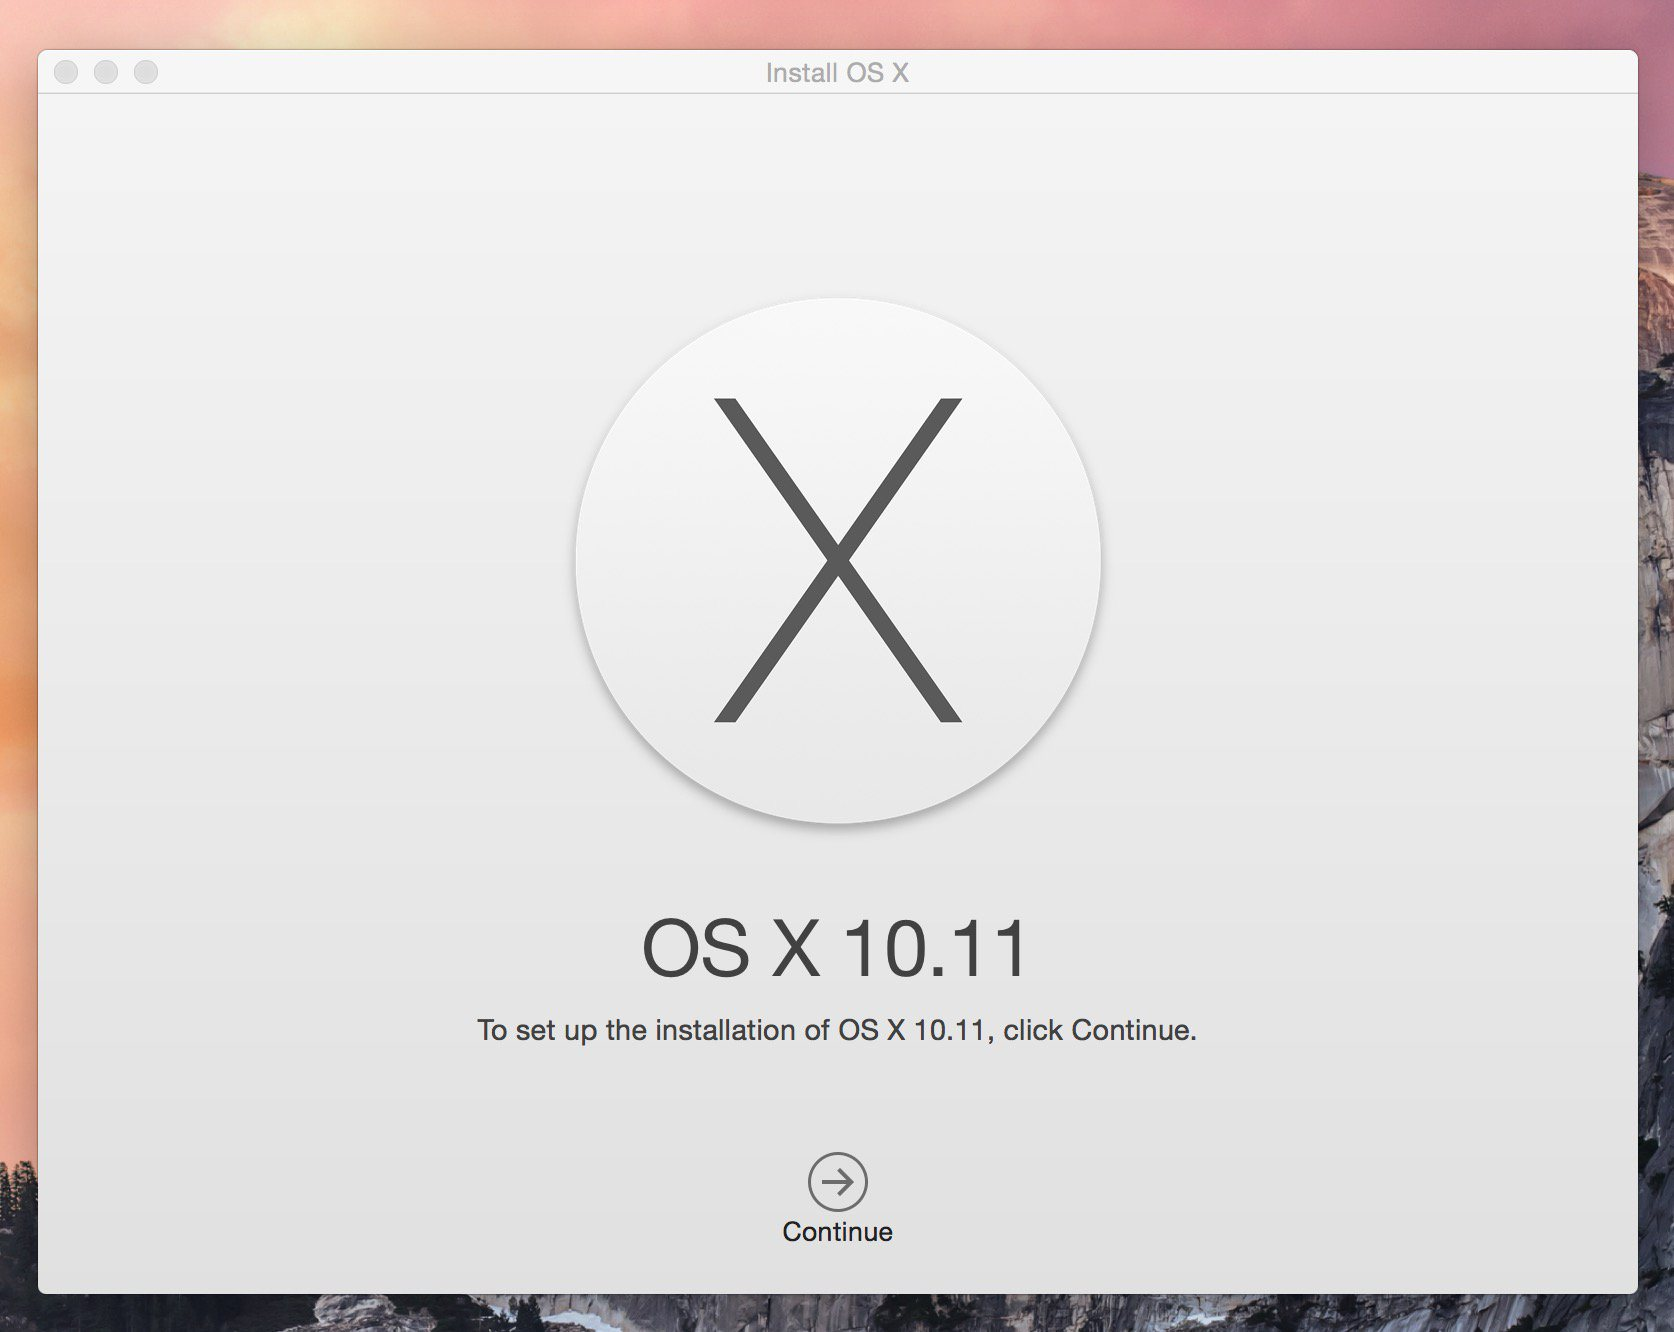 16 Common OS X El Capitan Problems & How to Fix Them